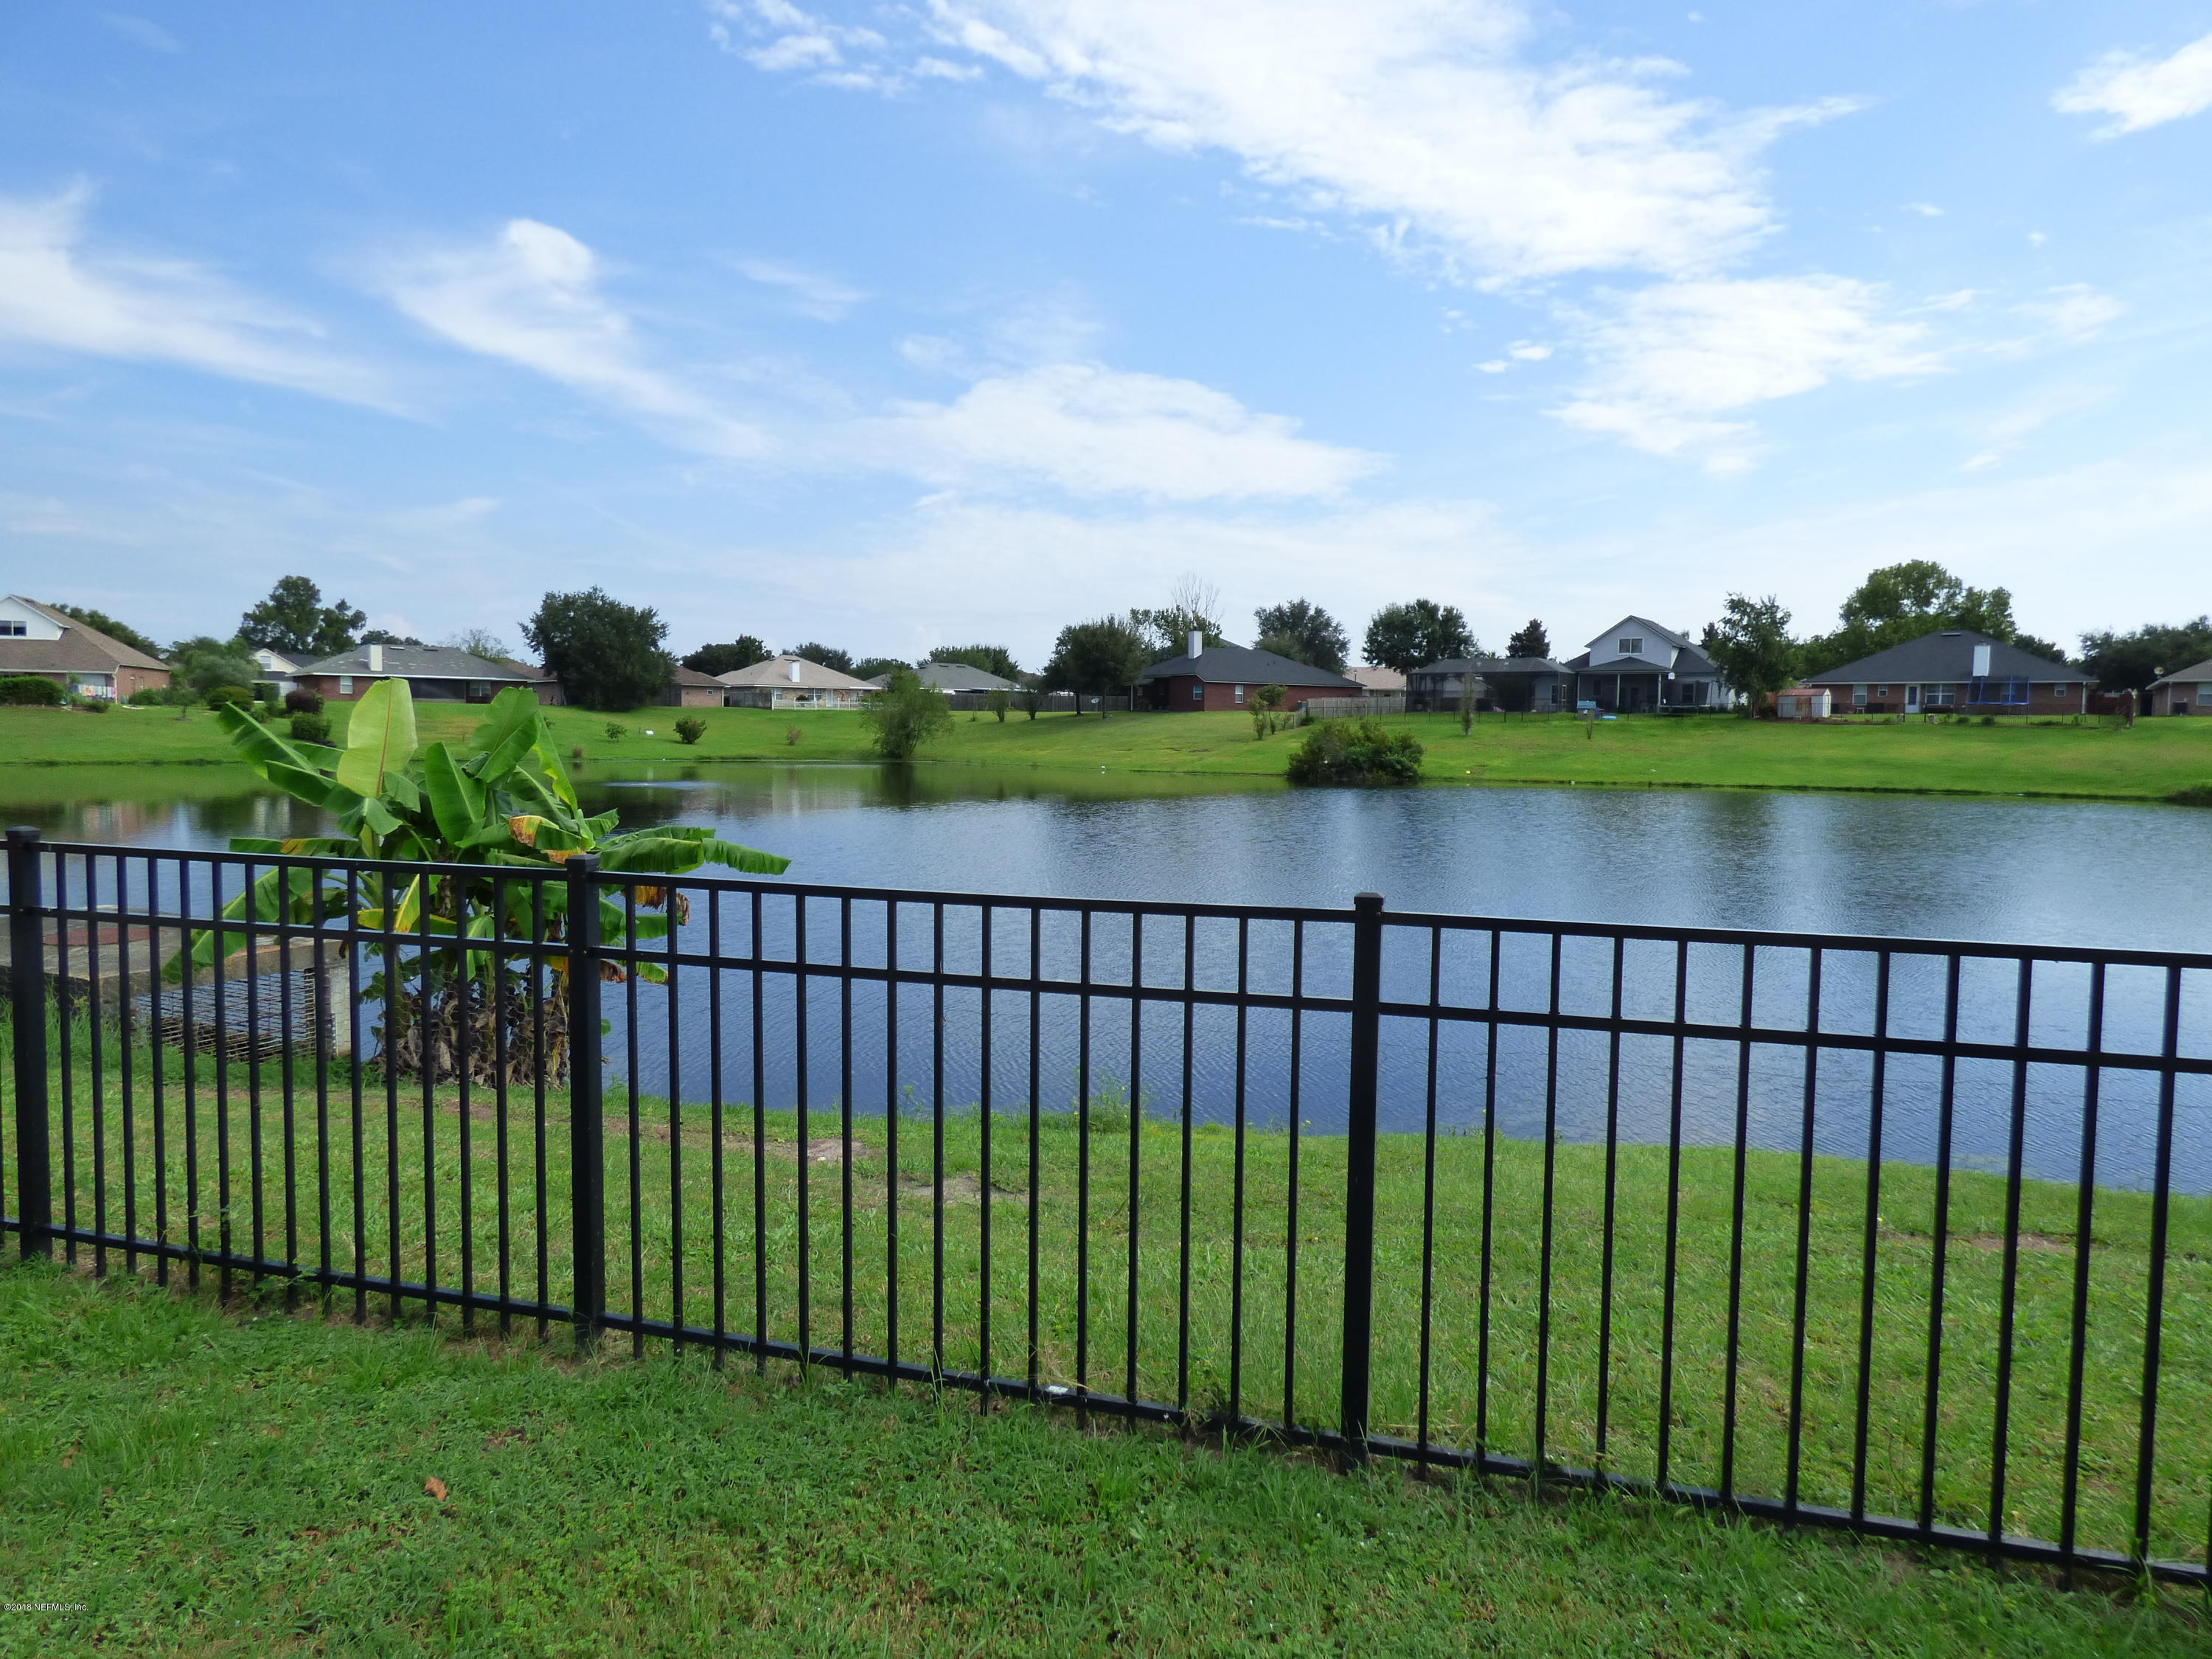 2479 SHELBY CREEK, JACKSONVILLE, FLORIDA 32221, 3 Bedrooms Bedrooms, ,2 BathroomsBathrooms,Residential - single family,For sale,SHELBY CREEK,952045